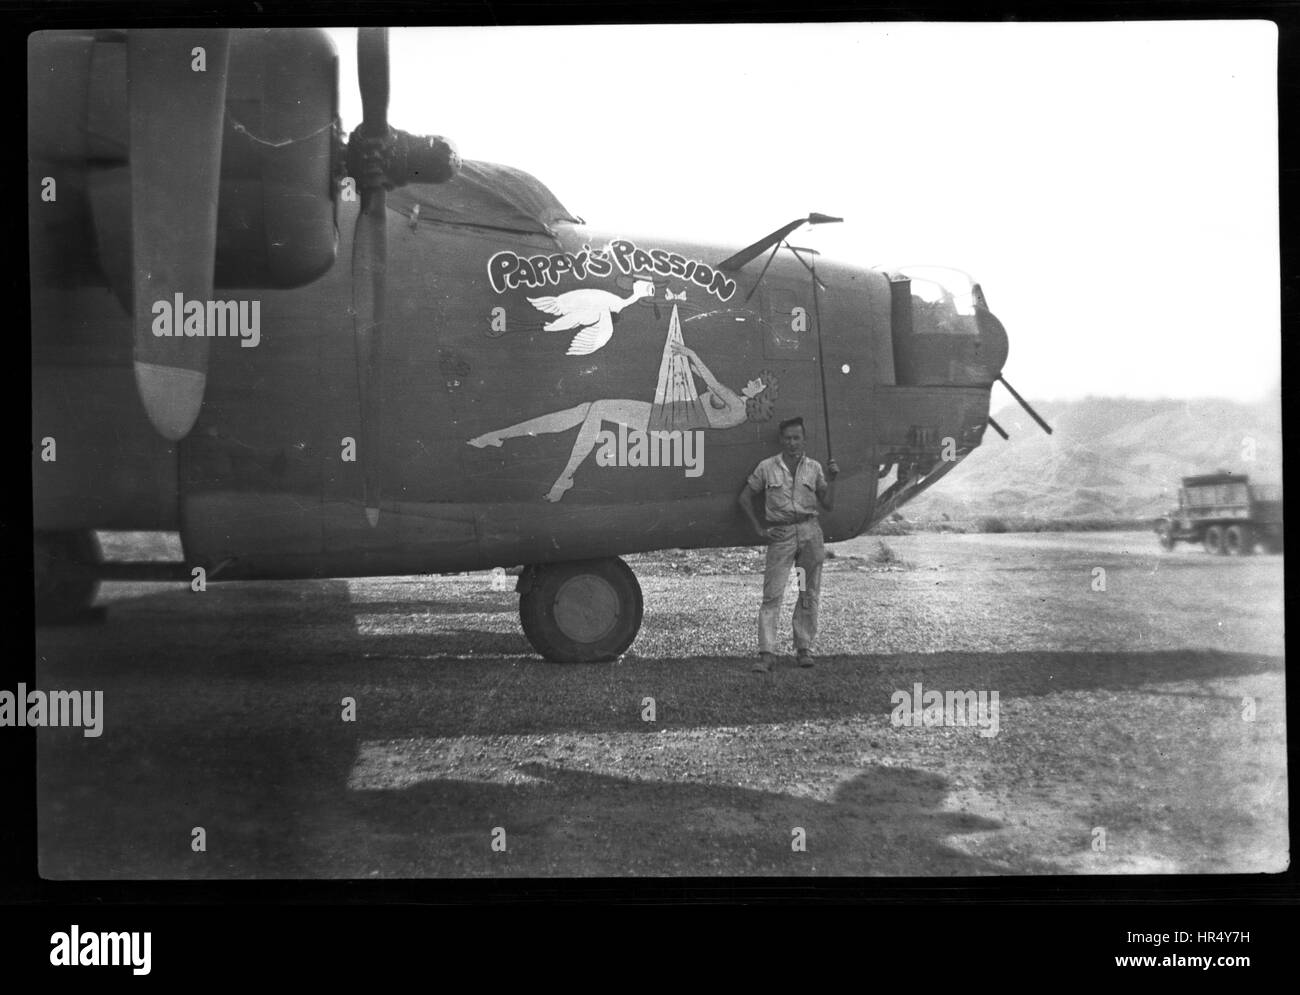 B-24 Pappy's Passion nose art War bird with nose art parked on an air field in New Guinea during WWII. United - Stock Image